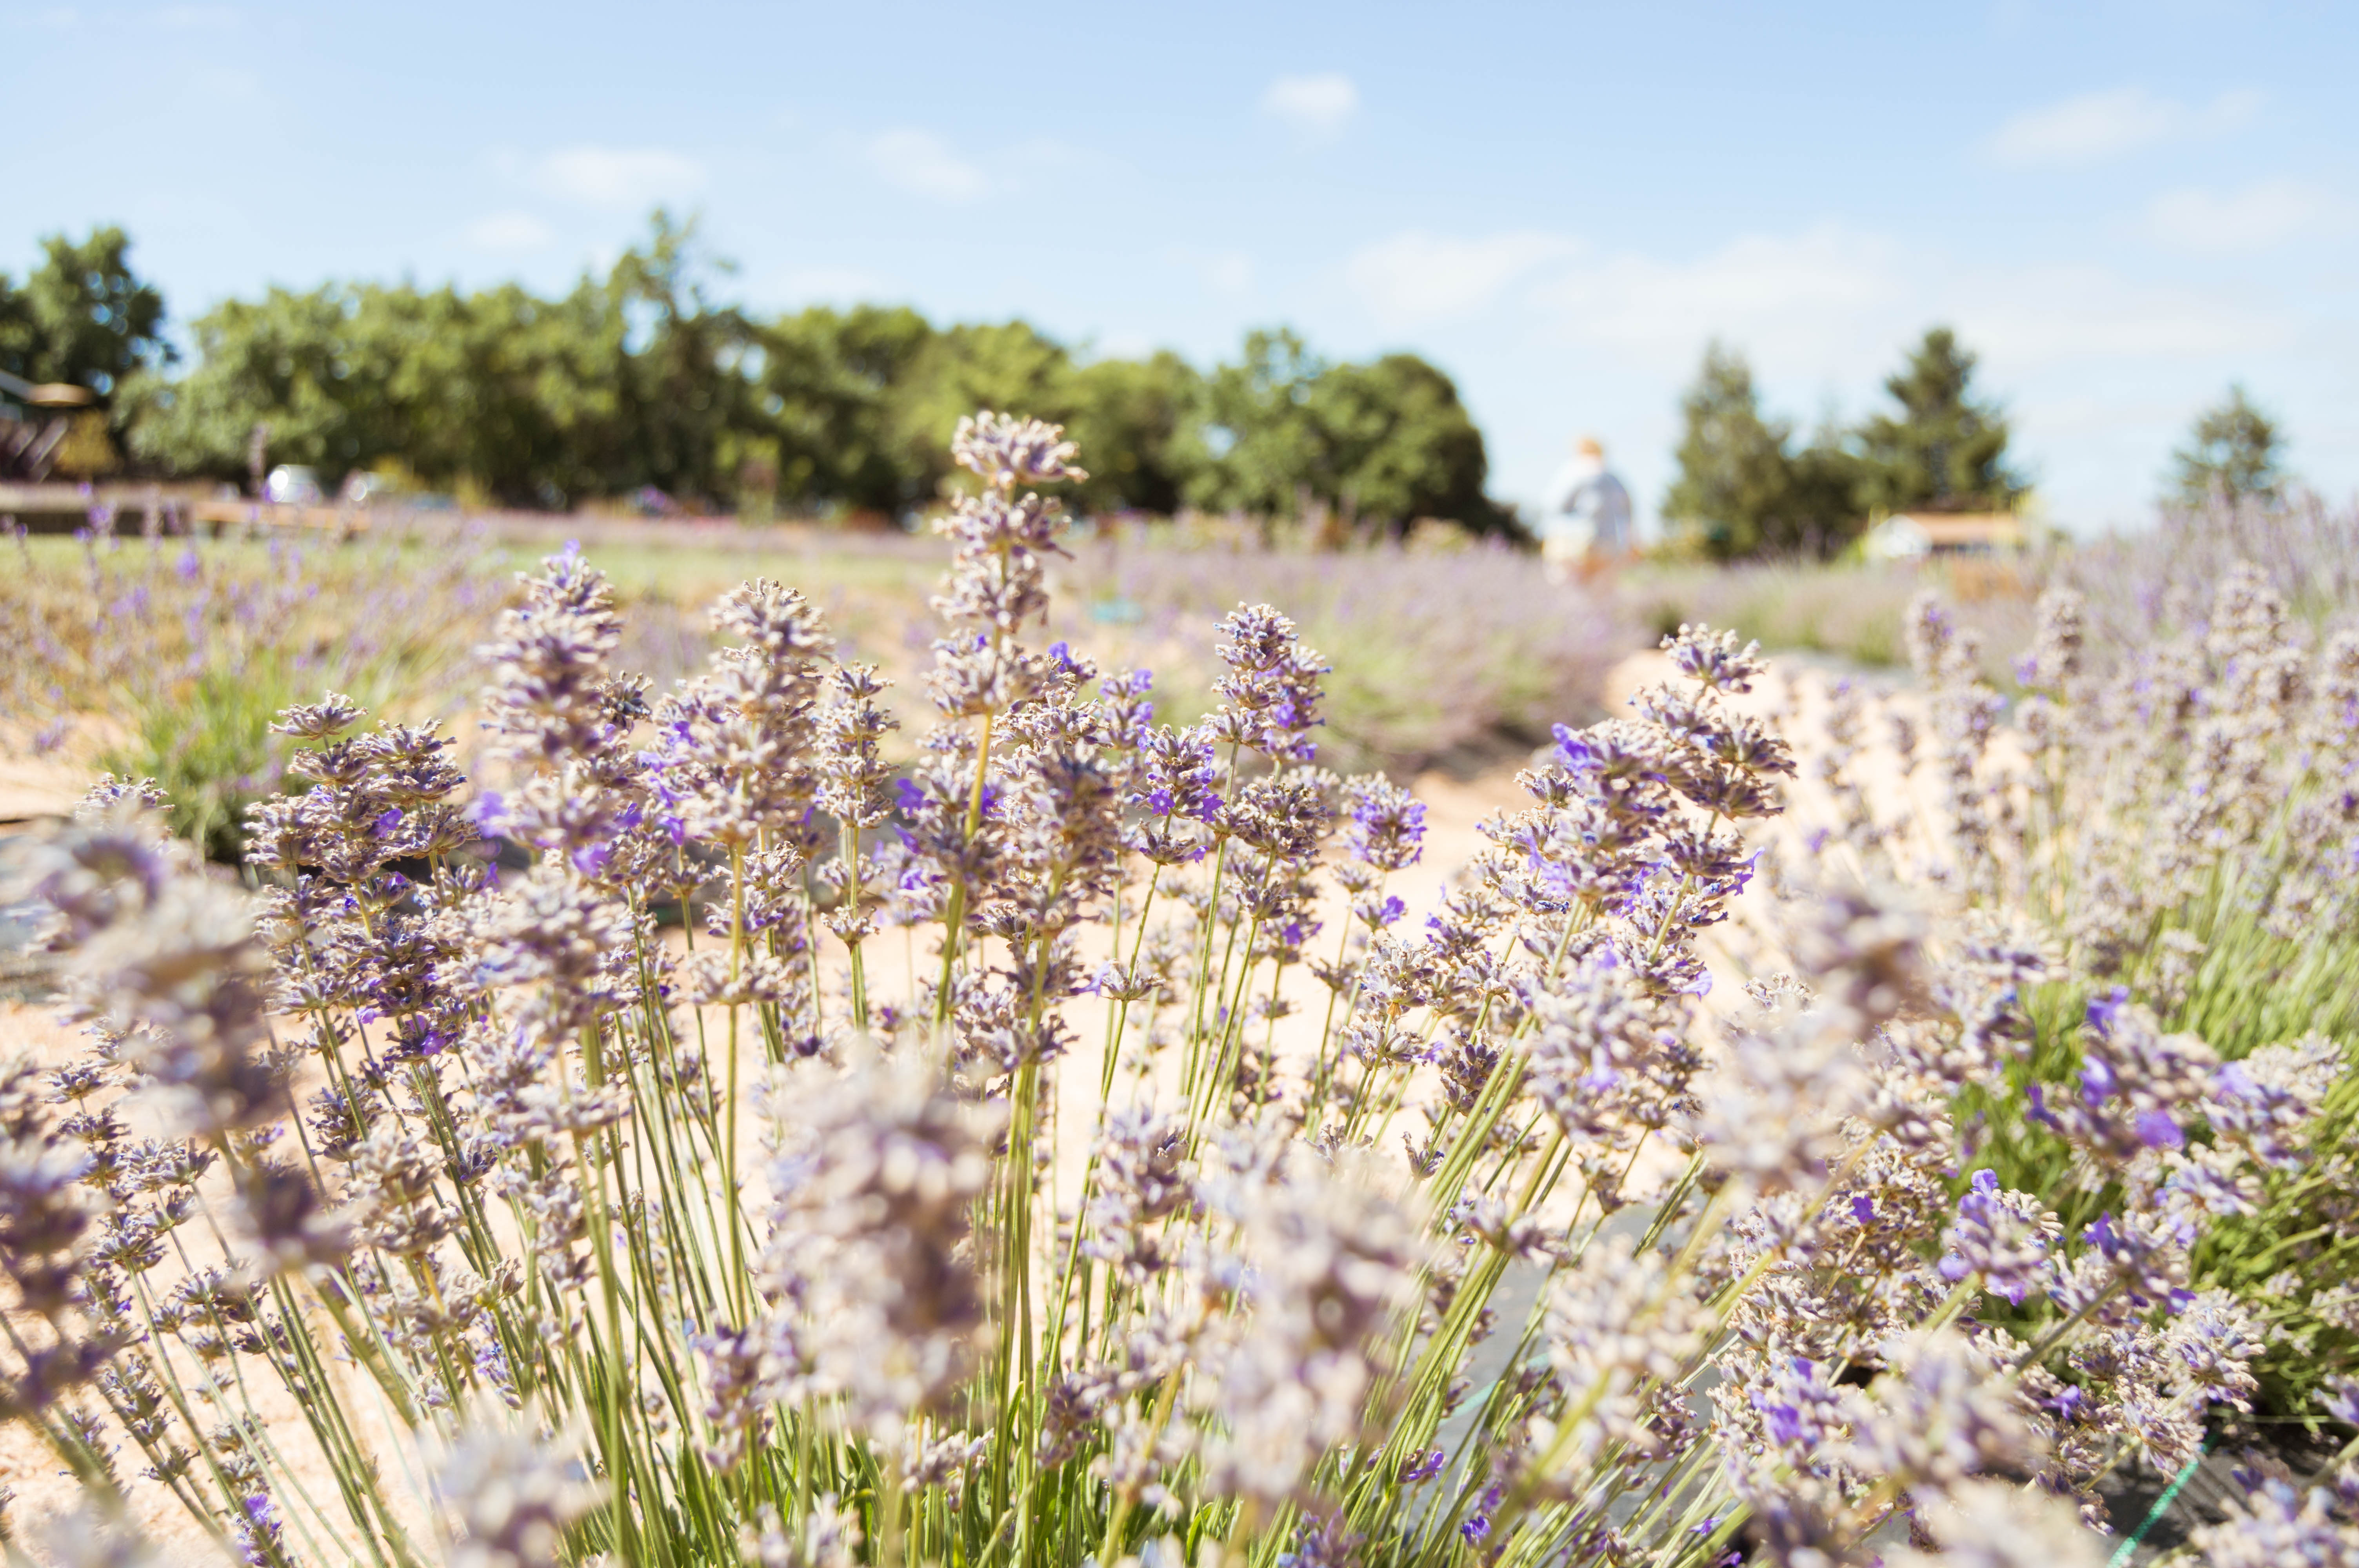 Lavender Labyrinth at Bees N Blooms, Santa Rosa, Sonoma County, California